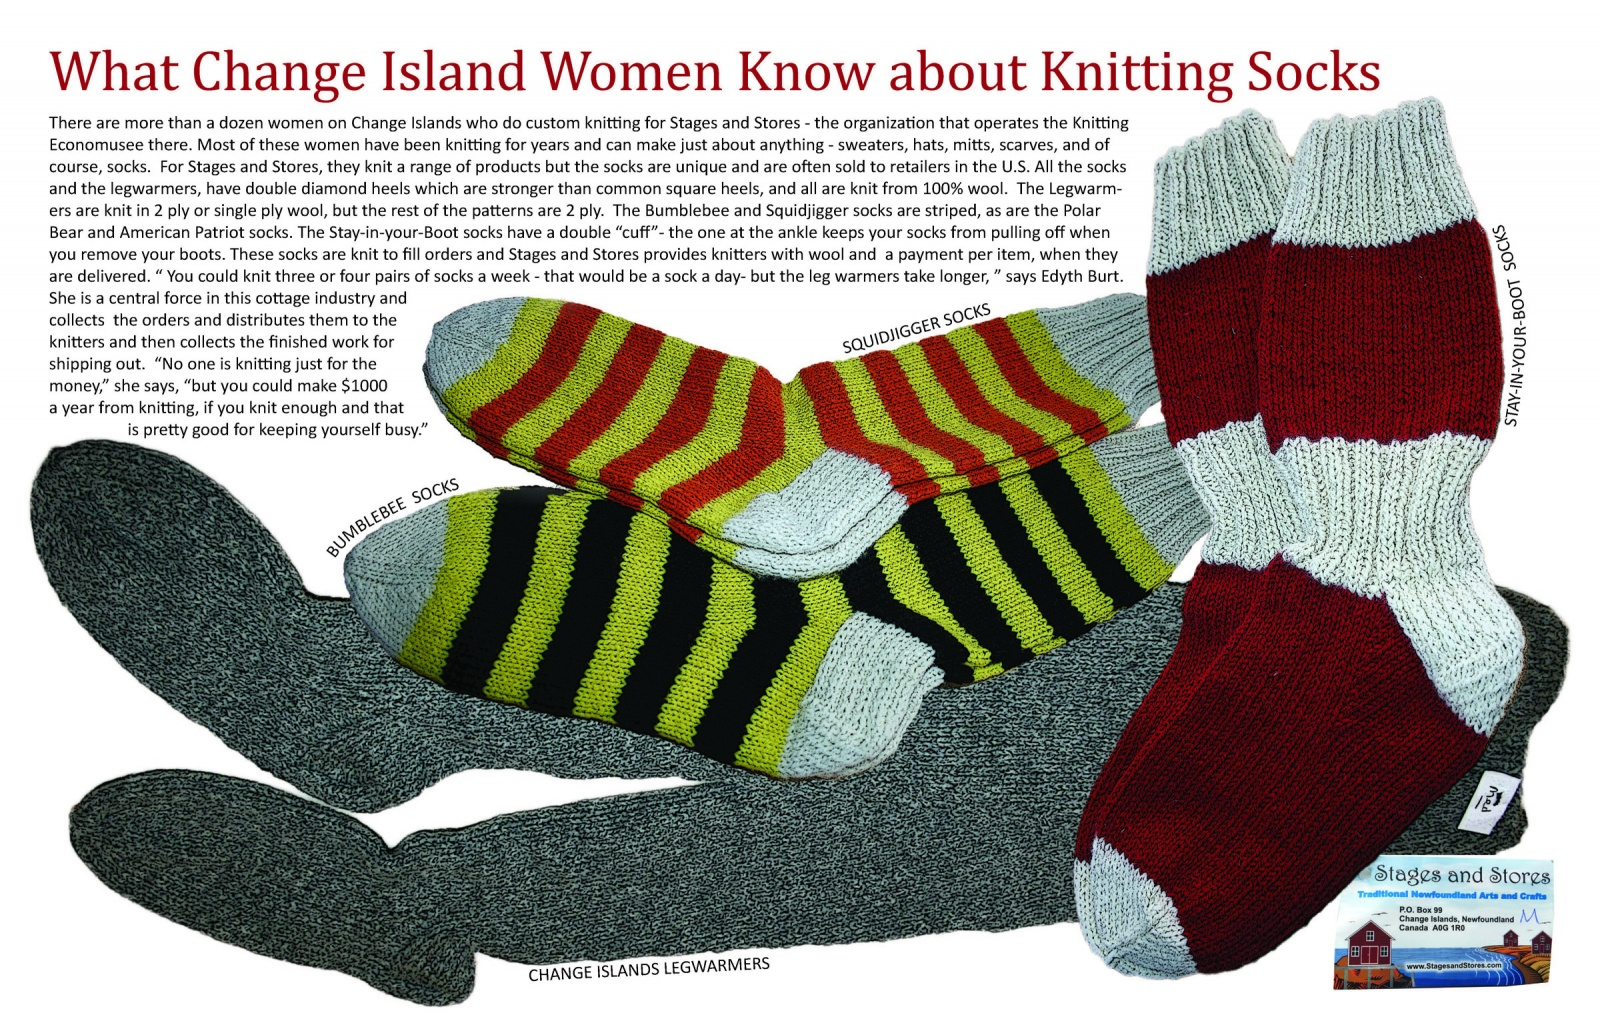 What Change Island Women Know about Knitting Socks